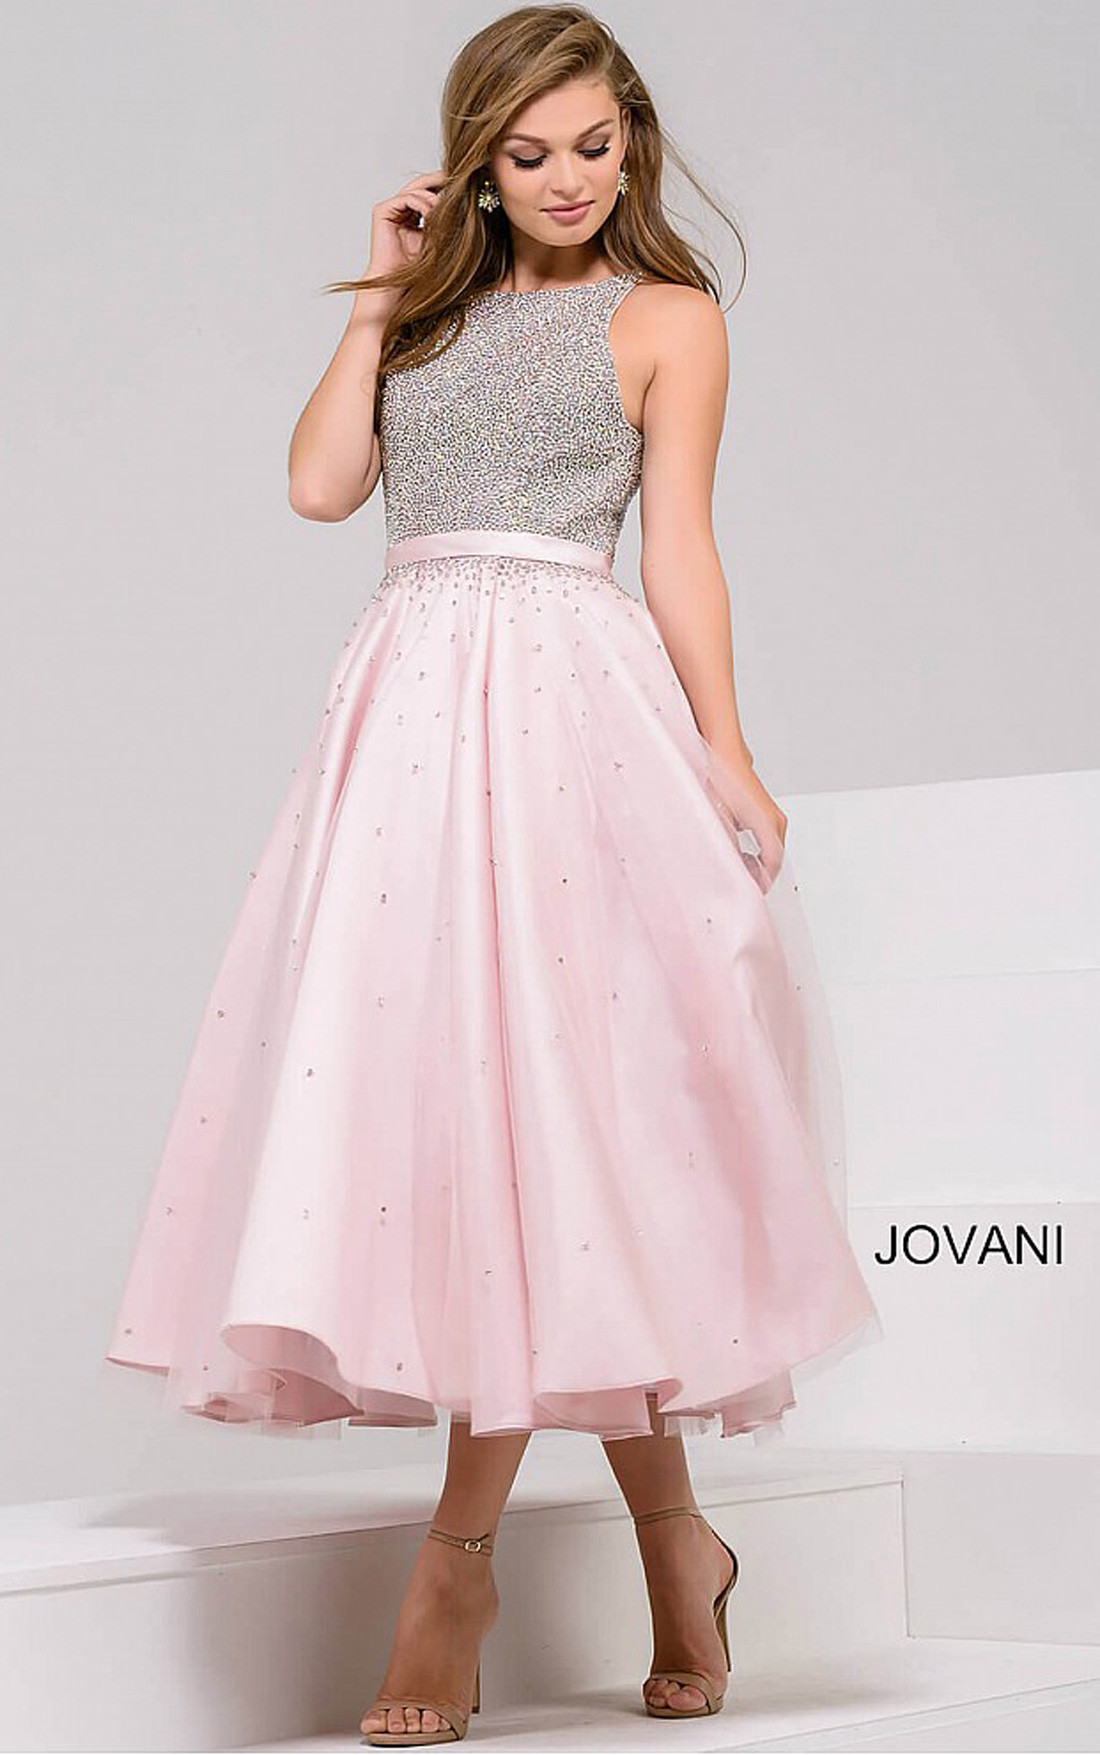 Jovani Dresses Womens Blush Pink Tea Length A Line Dress